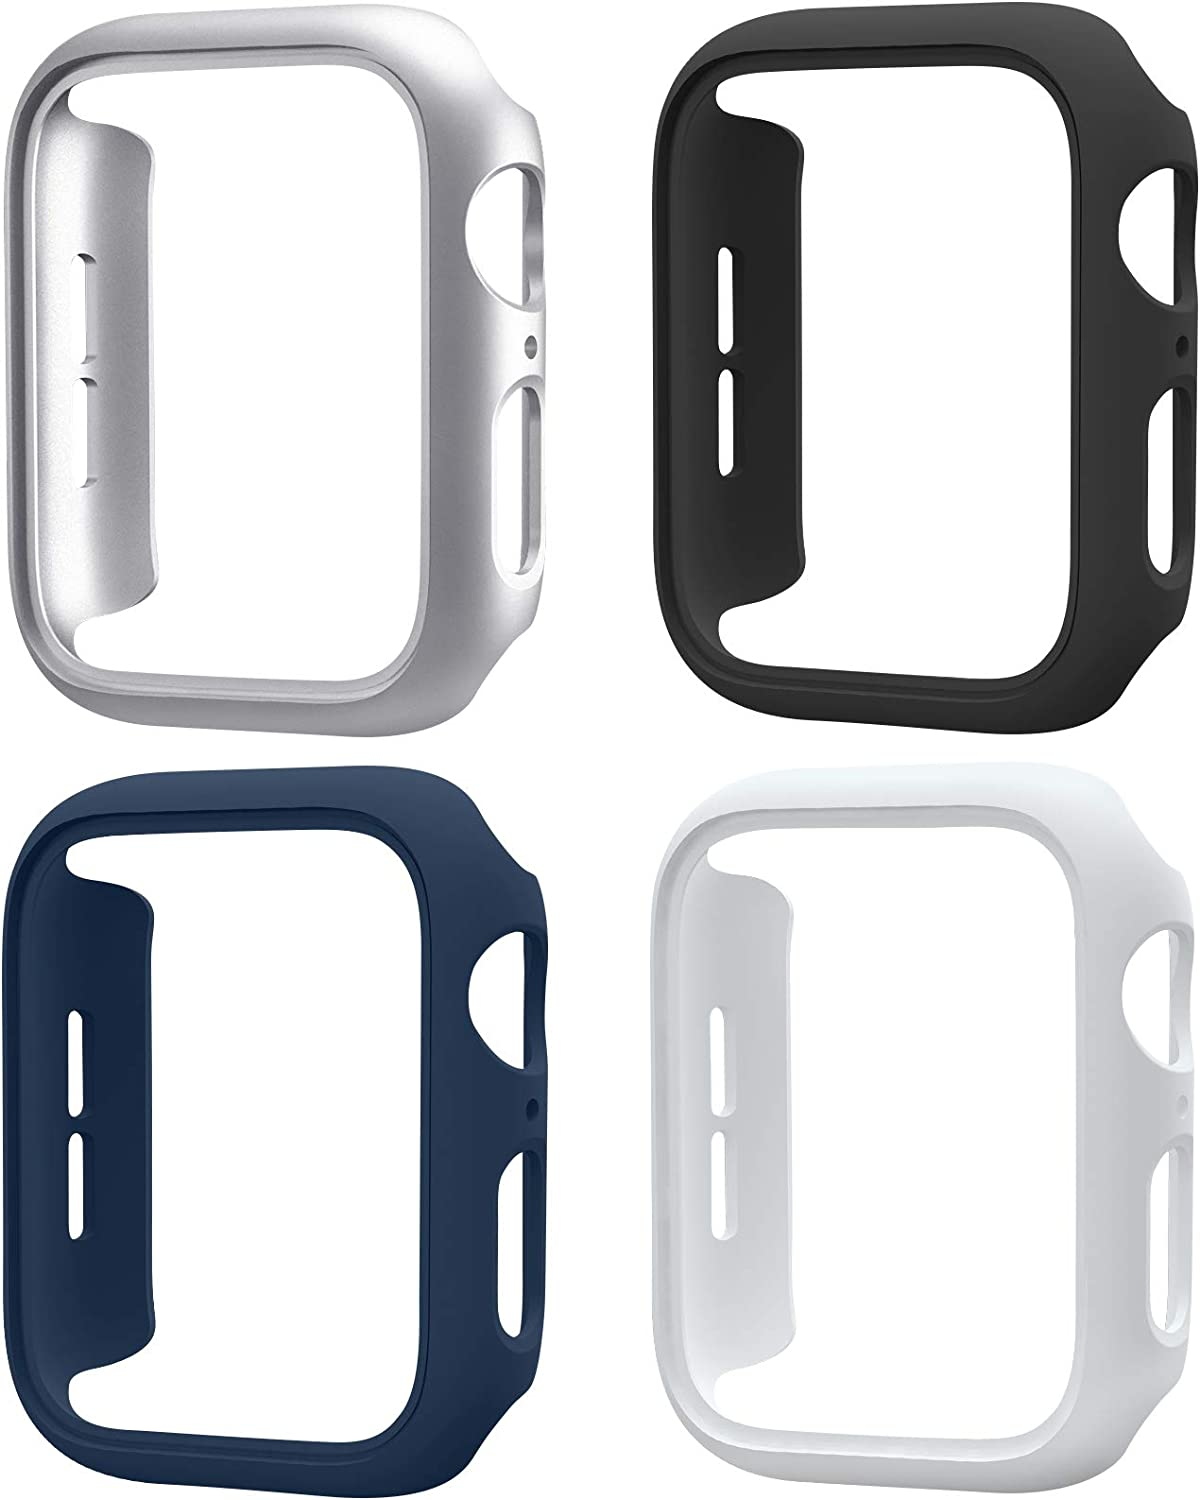 Mugust 4 Pack Compatible for Apple Watch Case 42mm Series 3 2 1, Hard PC Bumper Case Protective Cover Frame Compatible for iWatch 42mm, Silver/White/Black/Navy Blue